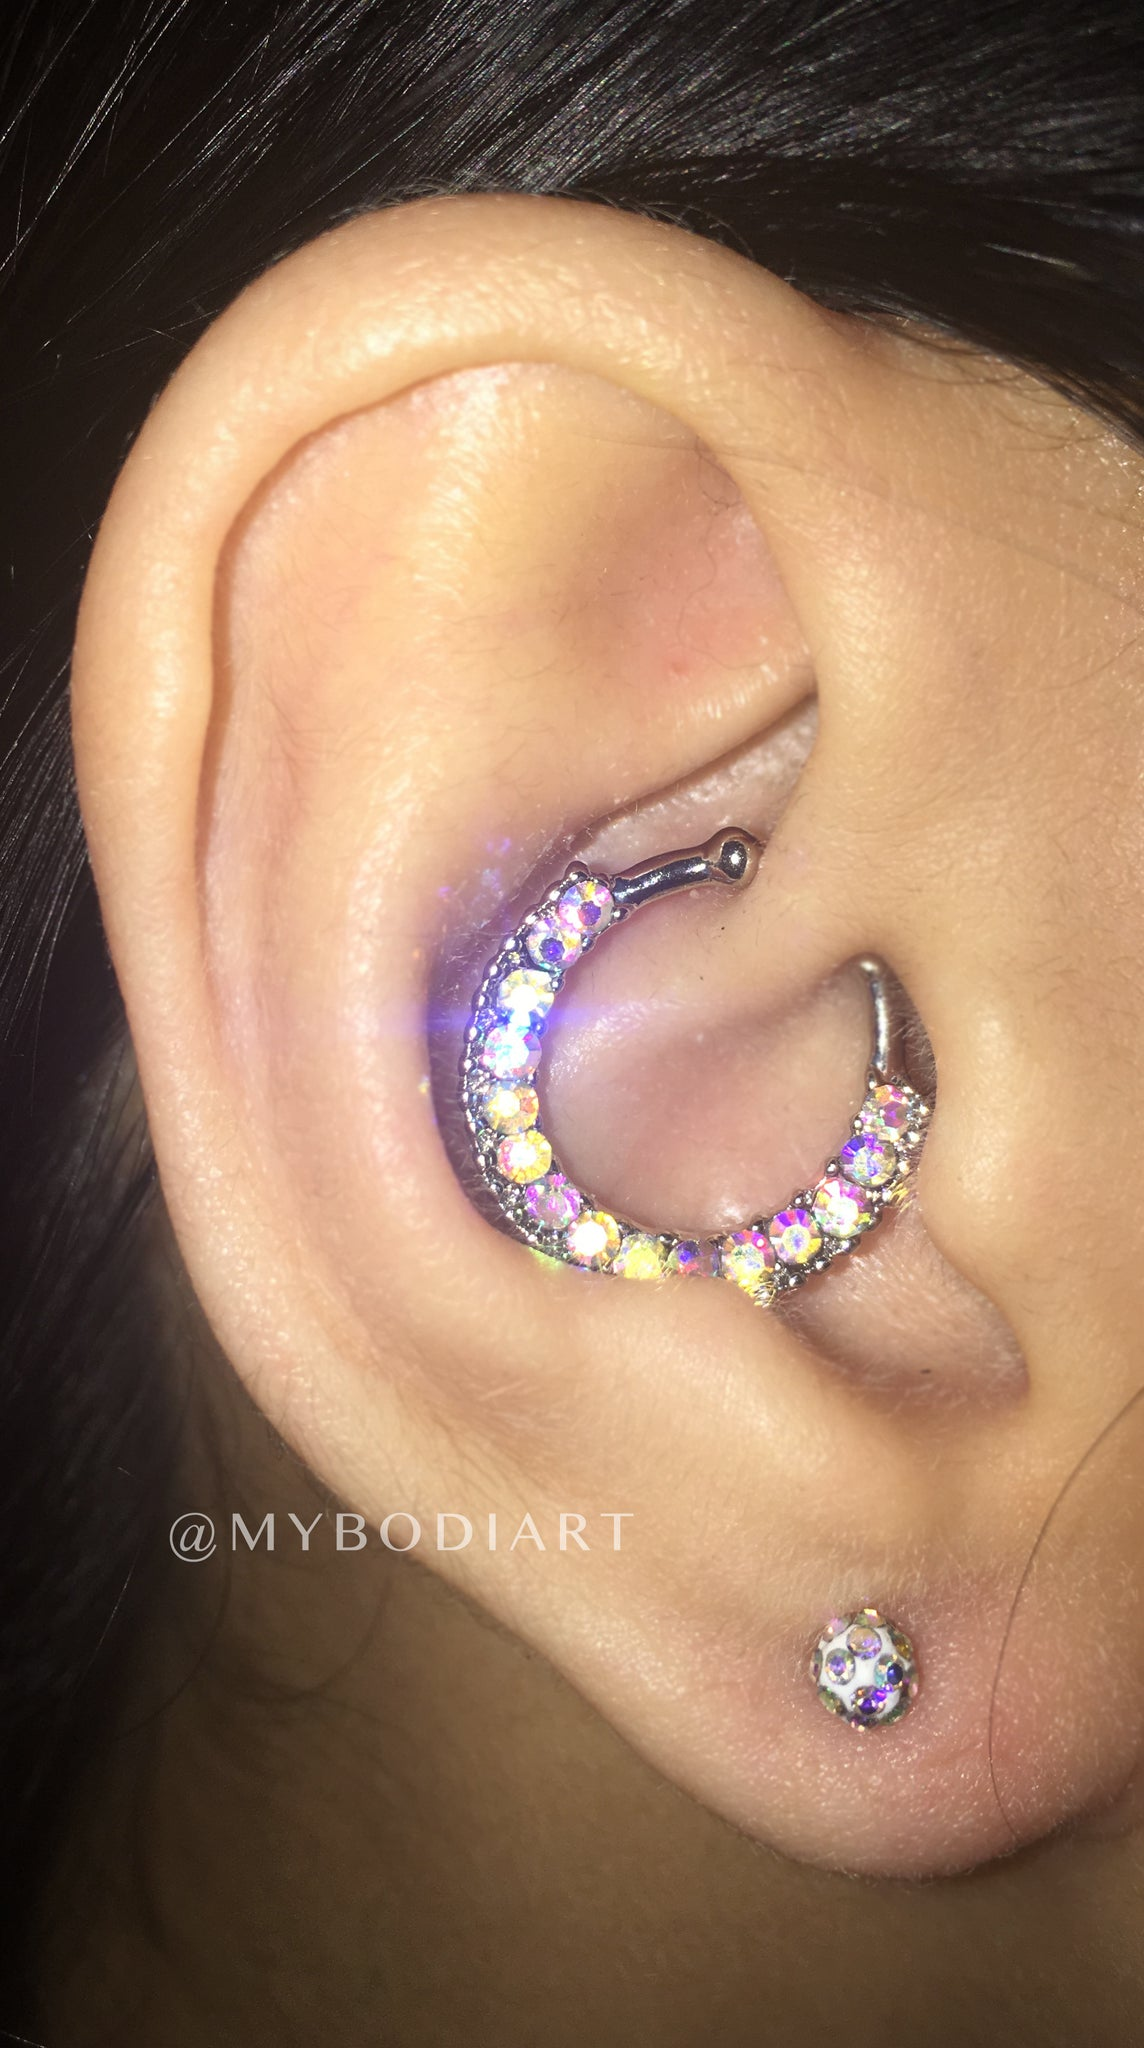 Pretty Feminine Ear Piercing Ideas for Teenagers - Rainbow Crystal Ball Earring Stud Cartilage, Helix, Tragus, Conch - www.MyBodiArt.com